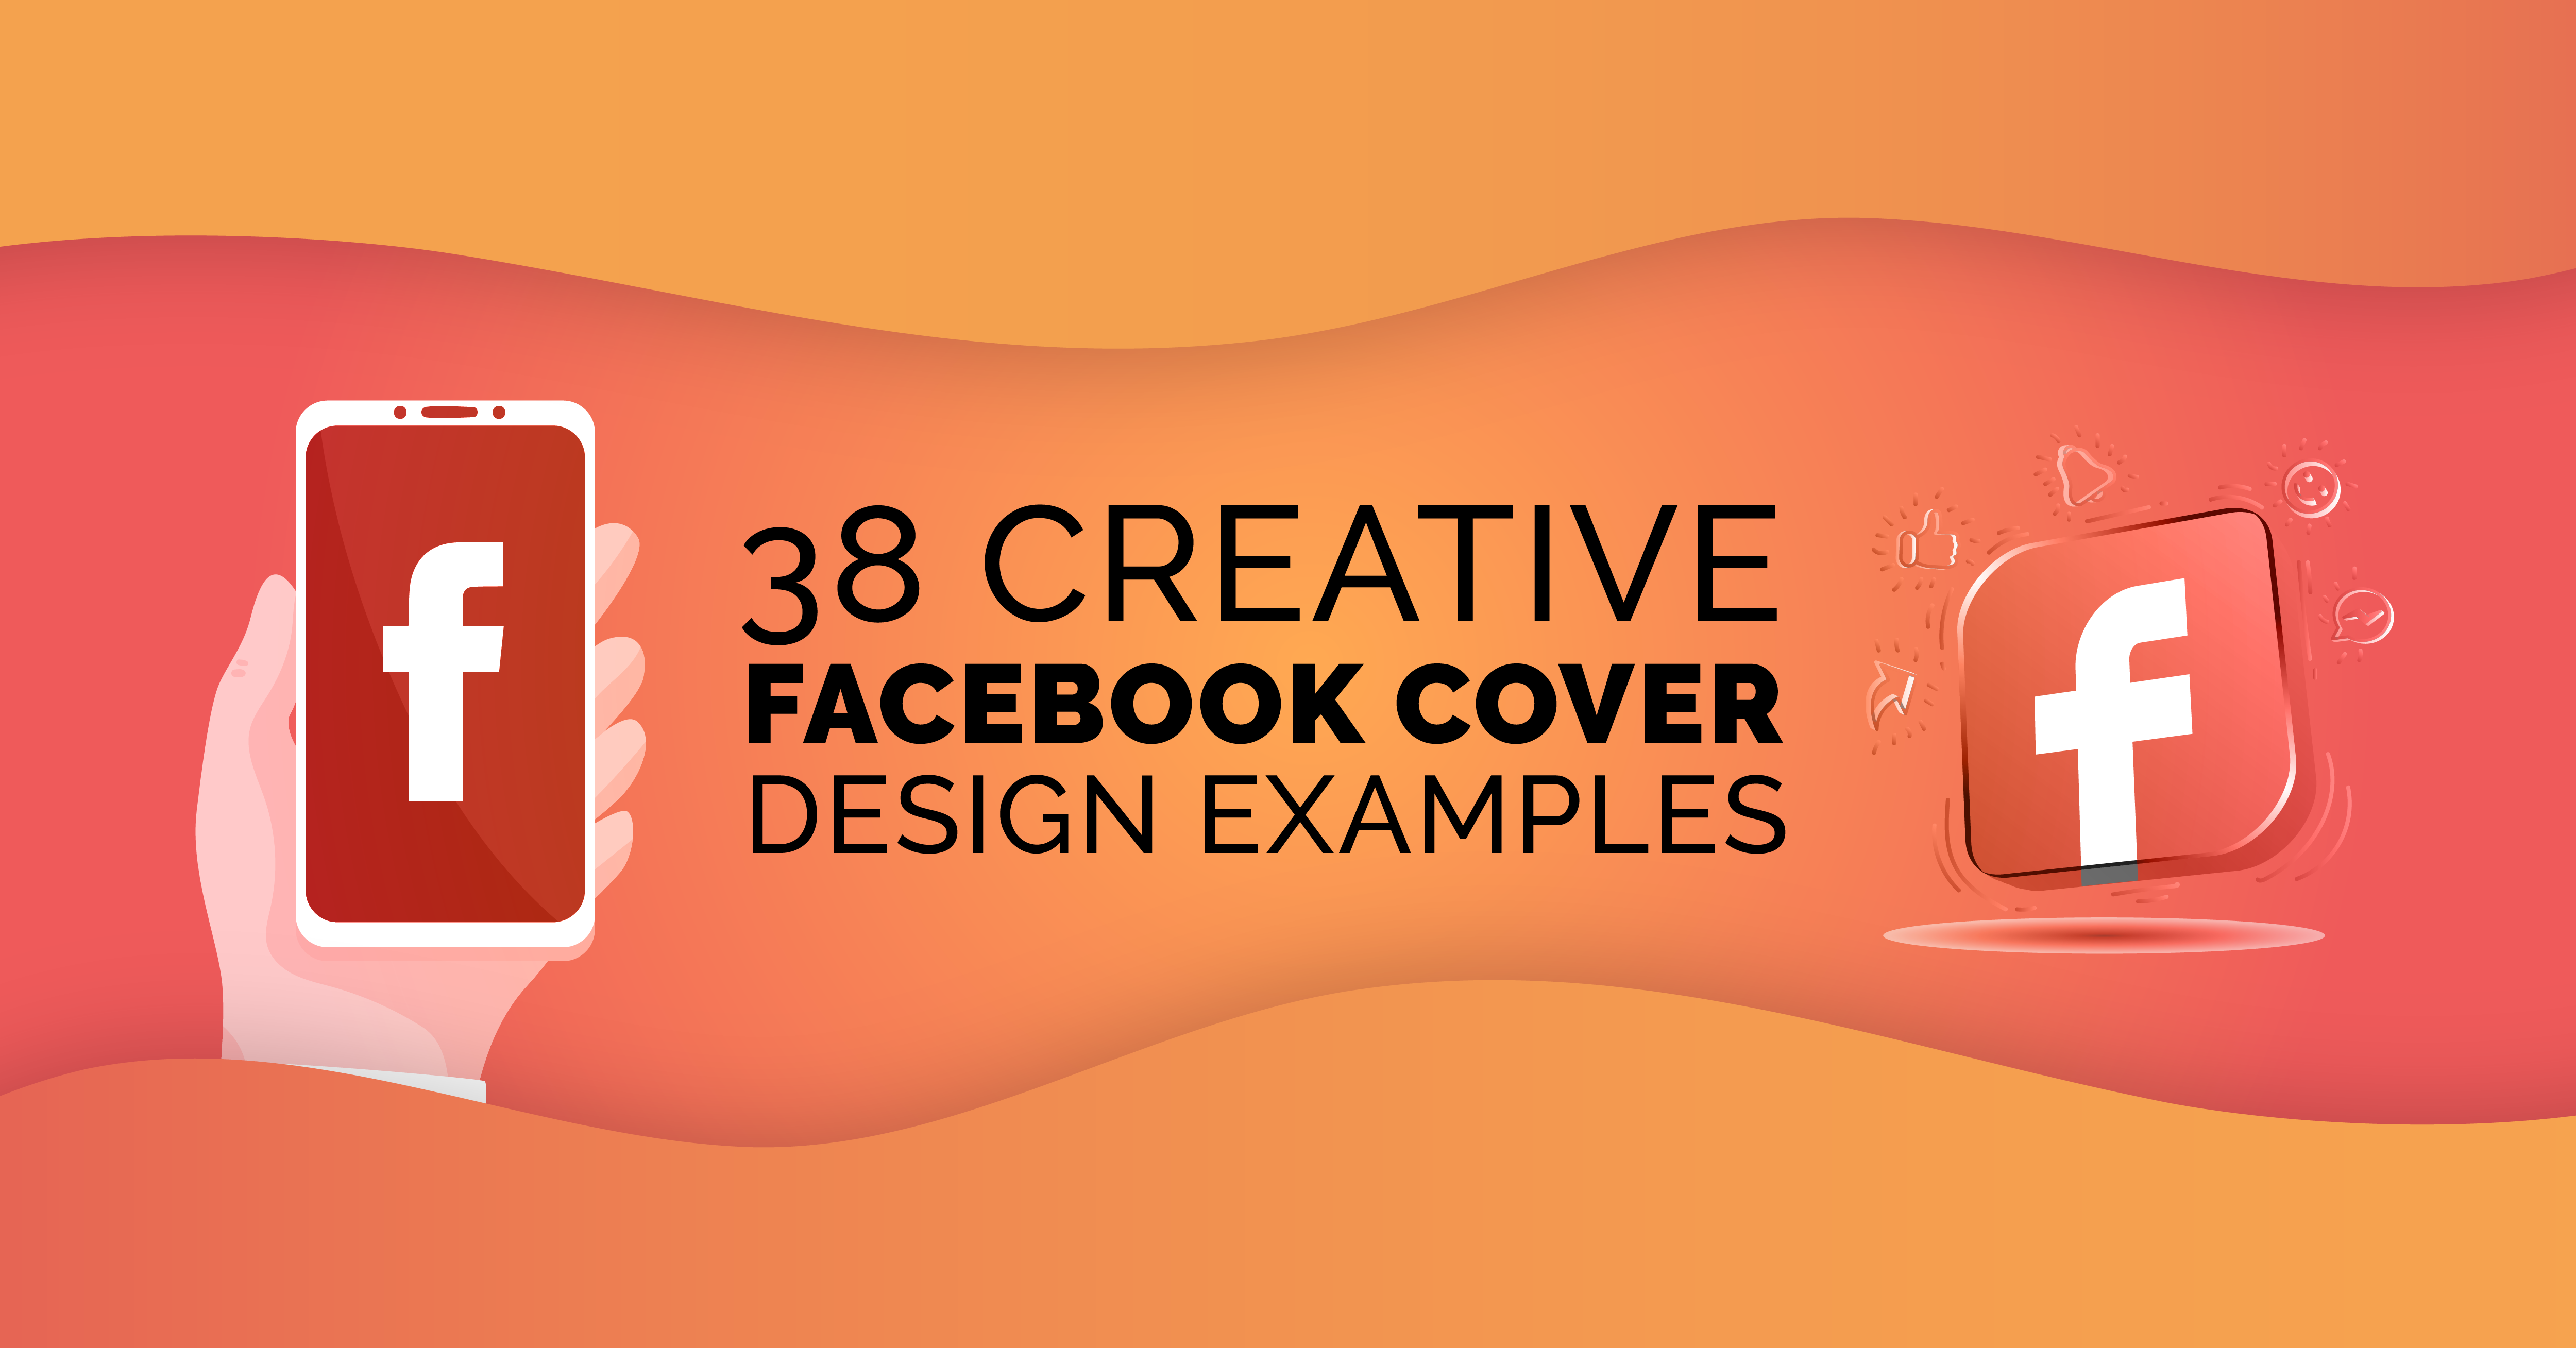 38 Creative Facebook Cover Design Examples To Follow in 2021